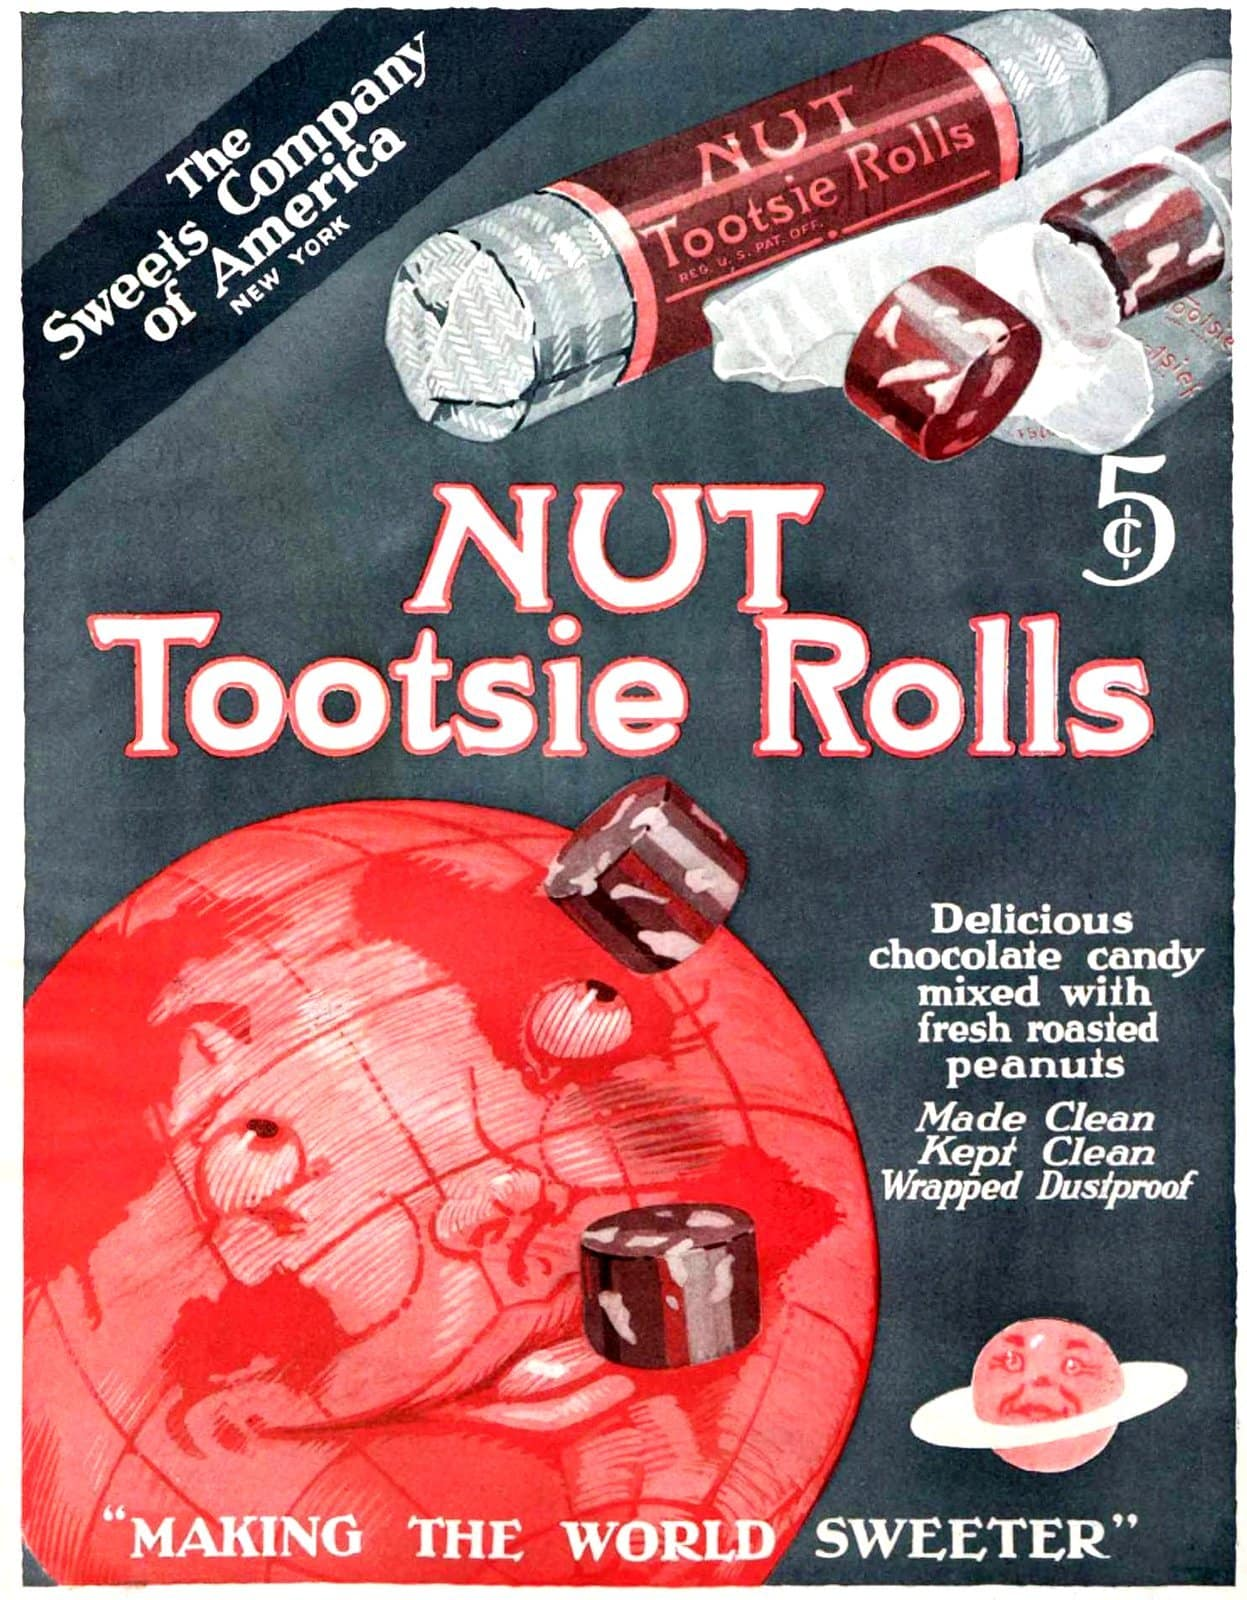 Vintage NUT Tootsie Roll candies from 1919